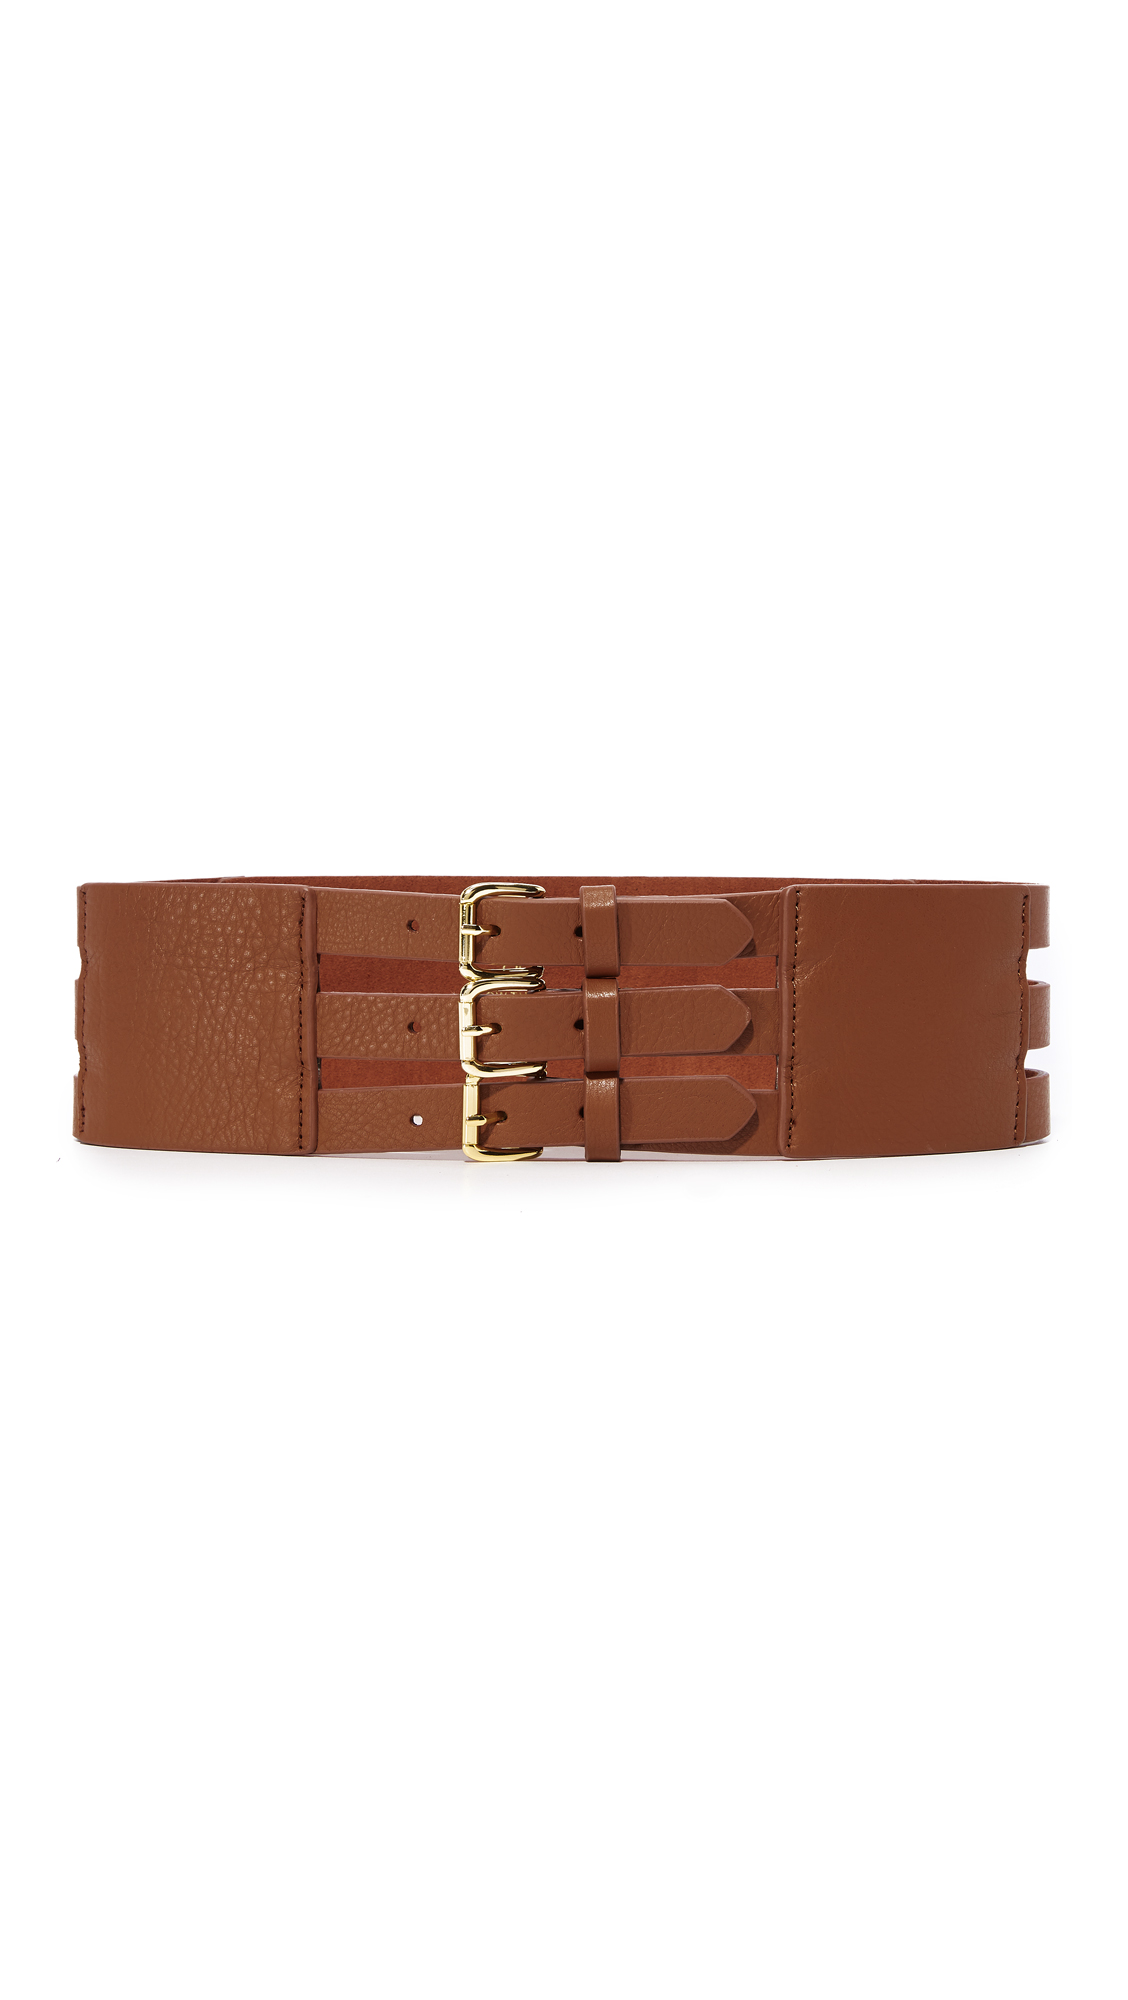 B-Low The Belt Scarlett Corset Belt - Brandy/Gold